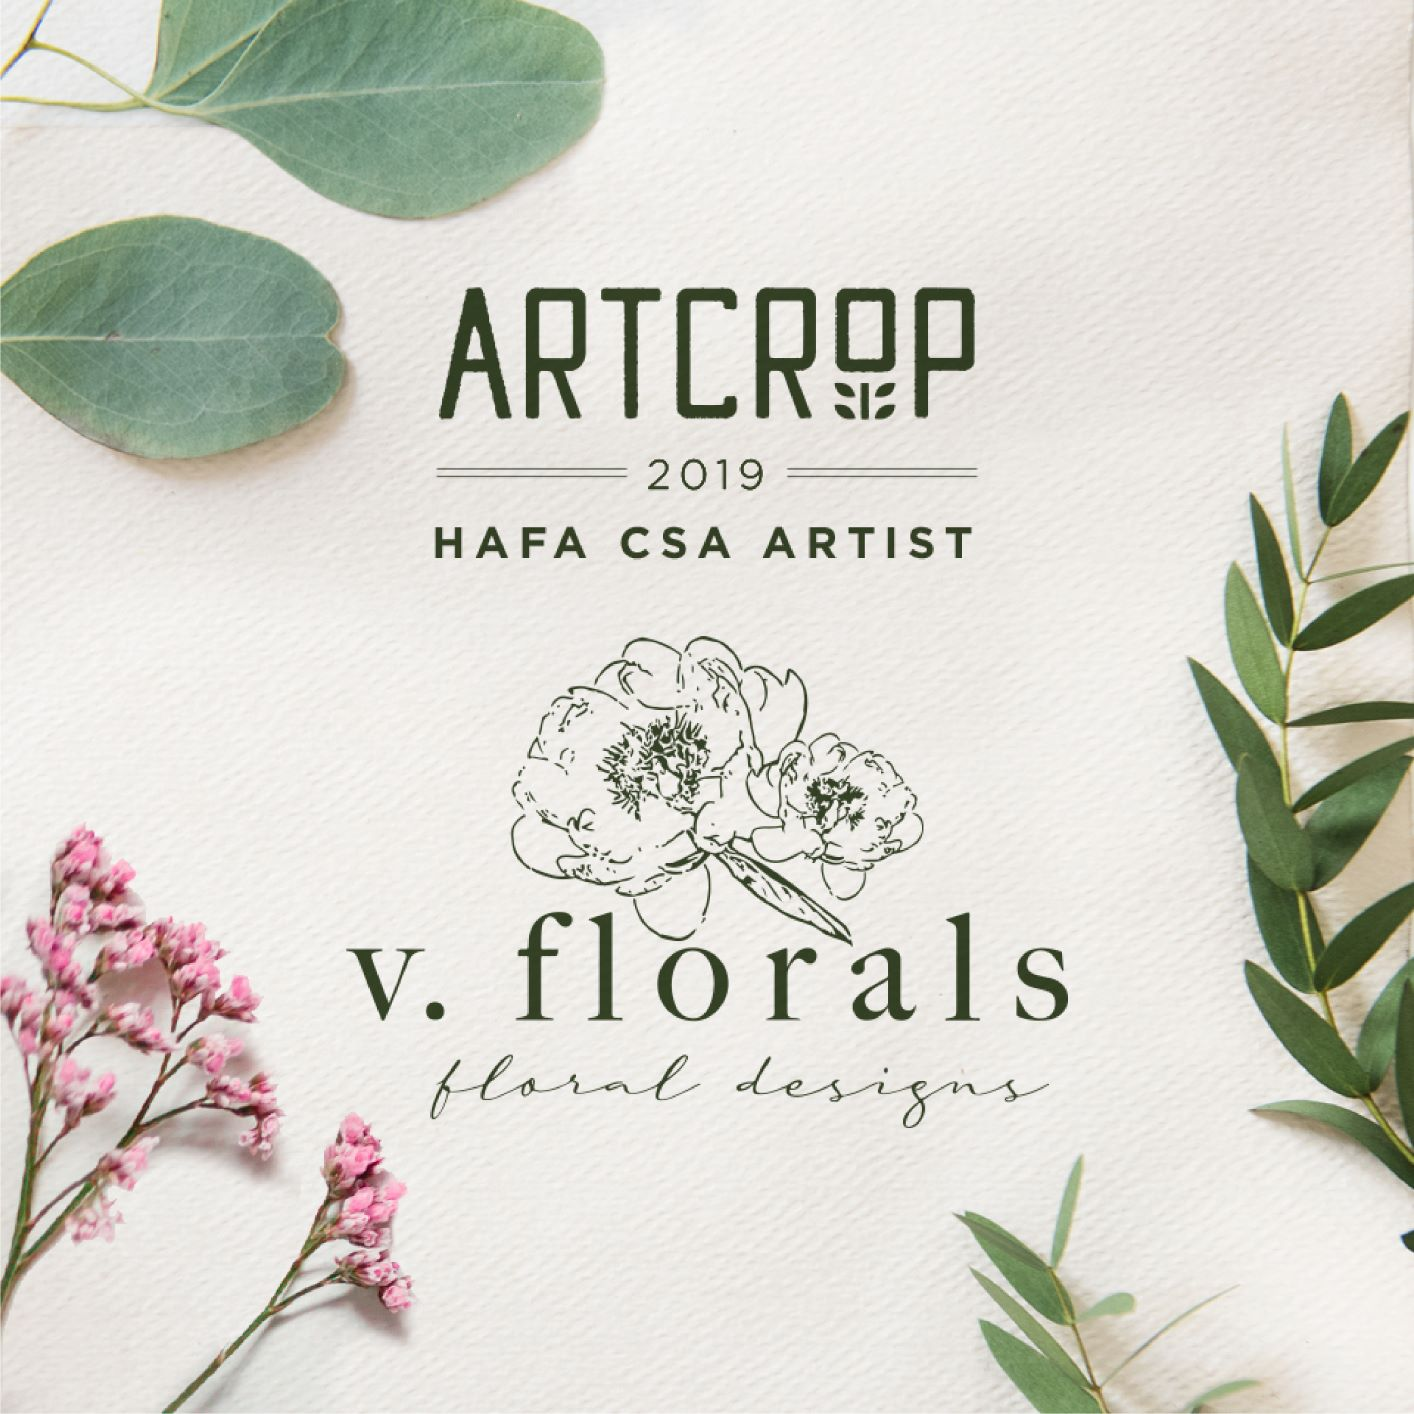 ArtCrop: crafted by the hands of farmers and artists